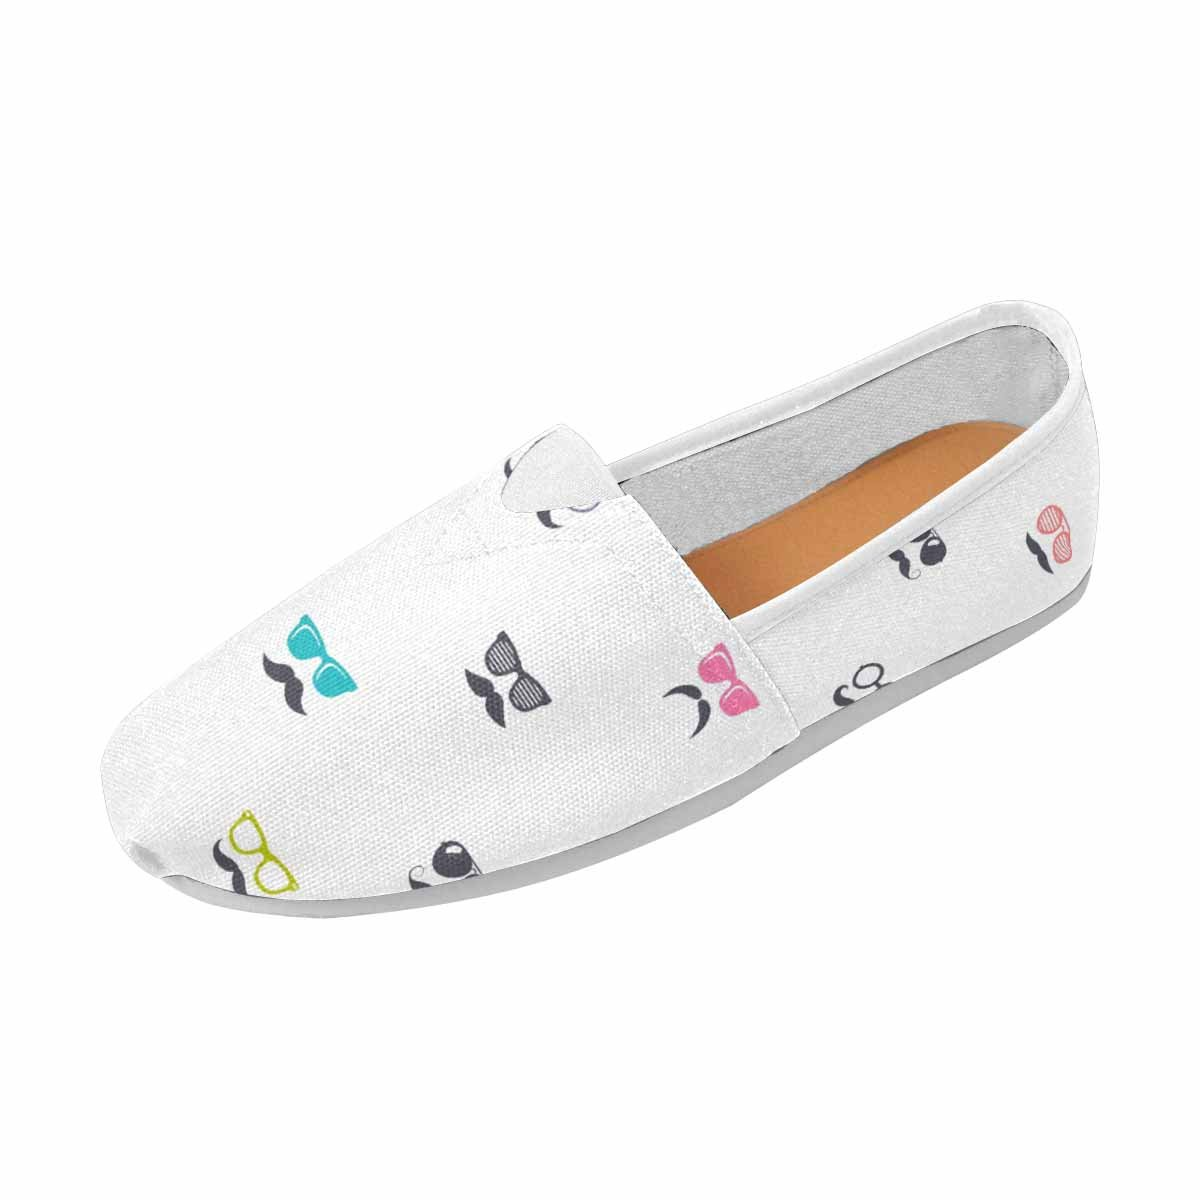 InterestPrint Women Flat Slip on Driving Walking Flats Shoes Fashion Loafers Glasses and Mustache